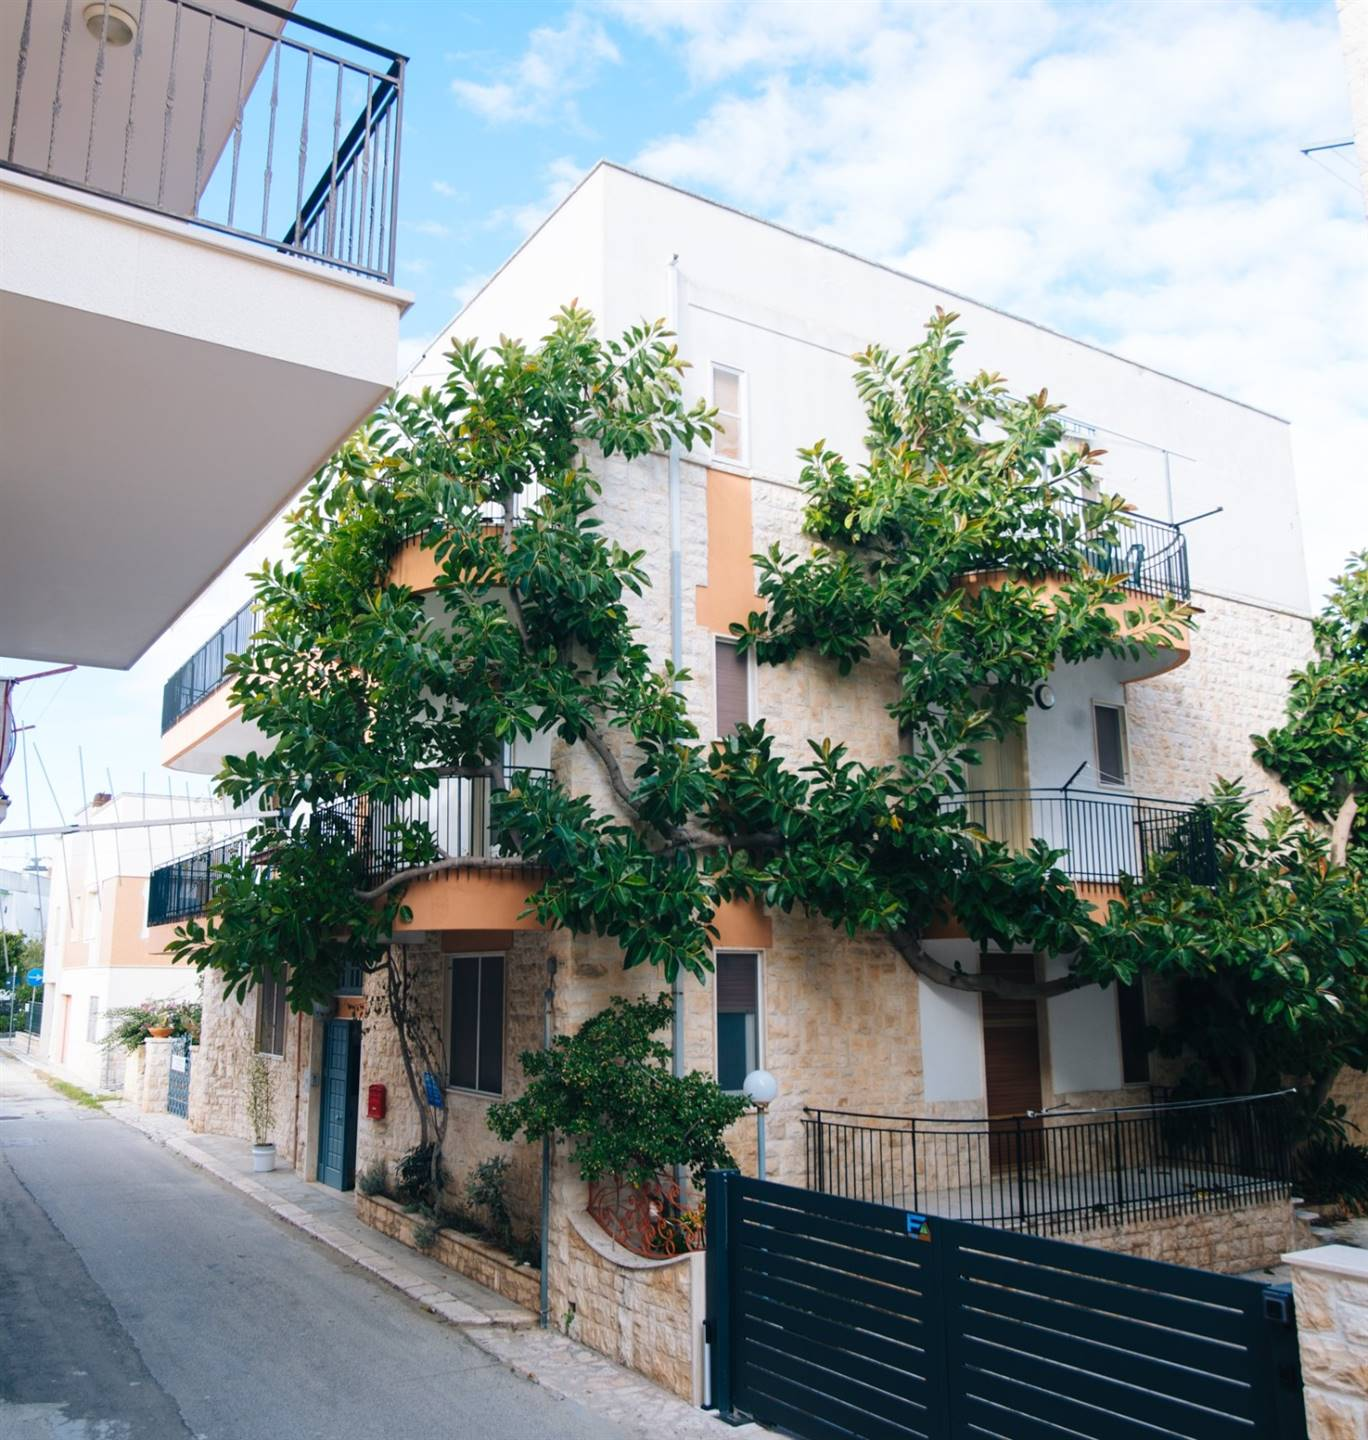 TORRE CANNE, FASANO, Apartment for sale, Good condition, Heating Non-existent, Energetic class: G, Epi: 165 kwh/m2 year, placed at 2°, composed by: 2 Rooms, Separate kitchen, , 1 Bedroom, 1 Bathroom,